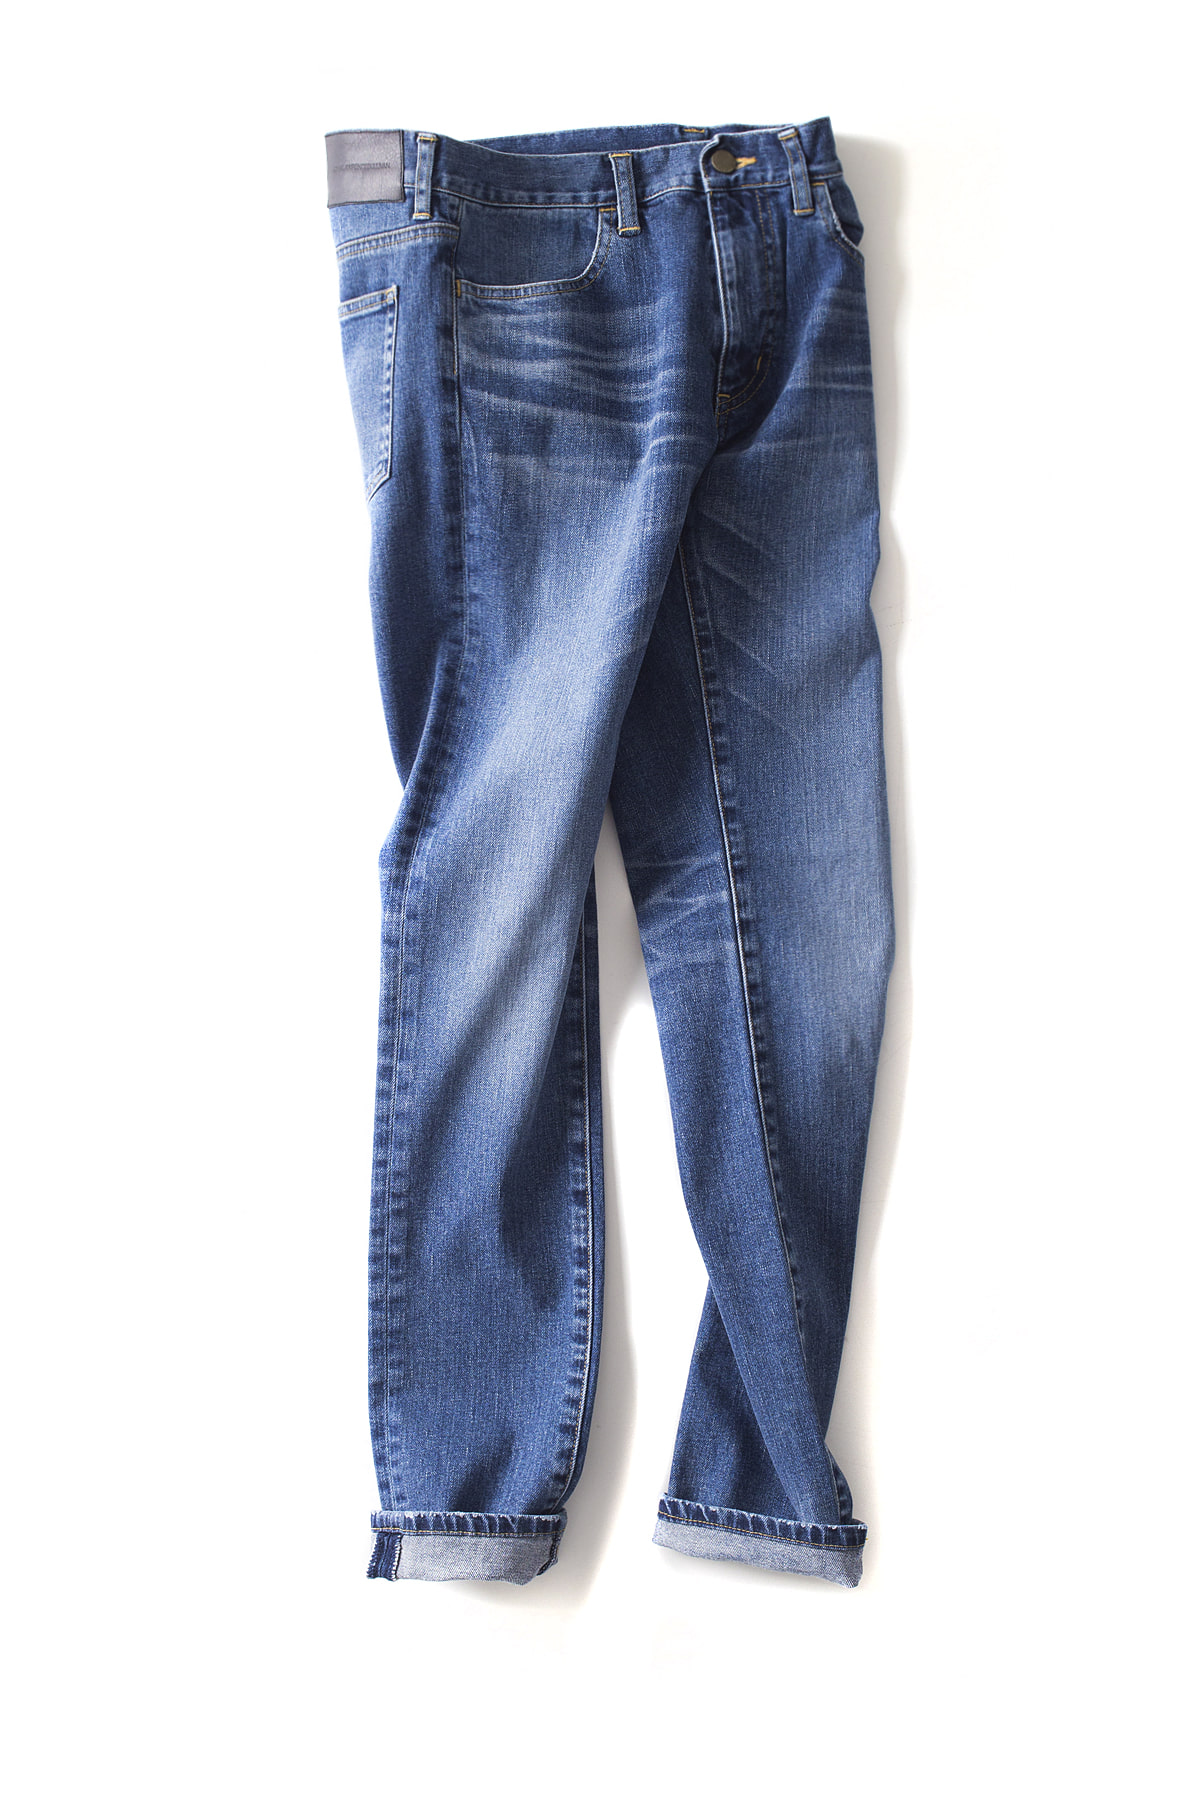 JOHN LAWRENCE SULLIVAN : Tapered Jeans (Washed)